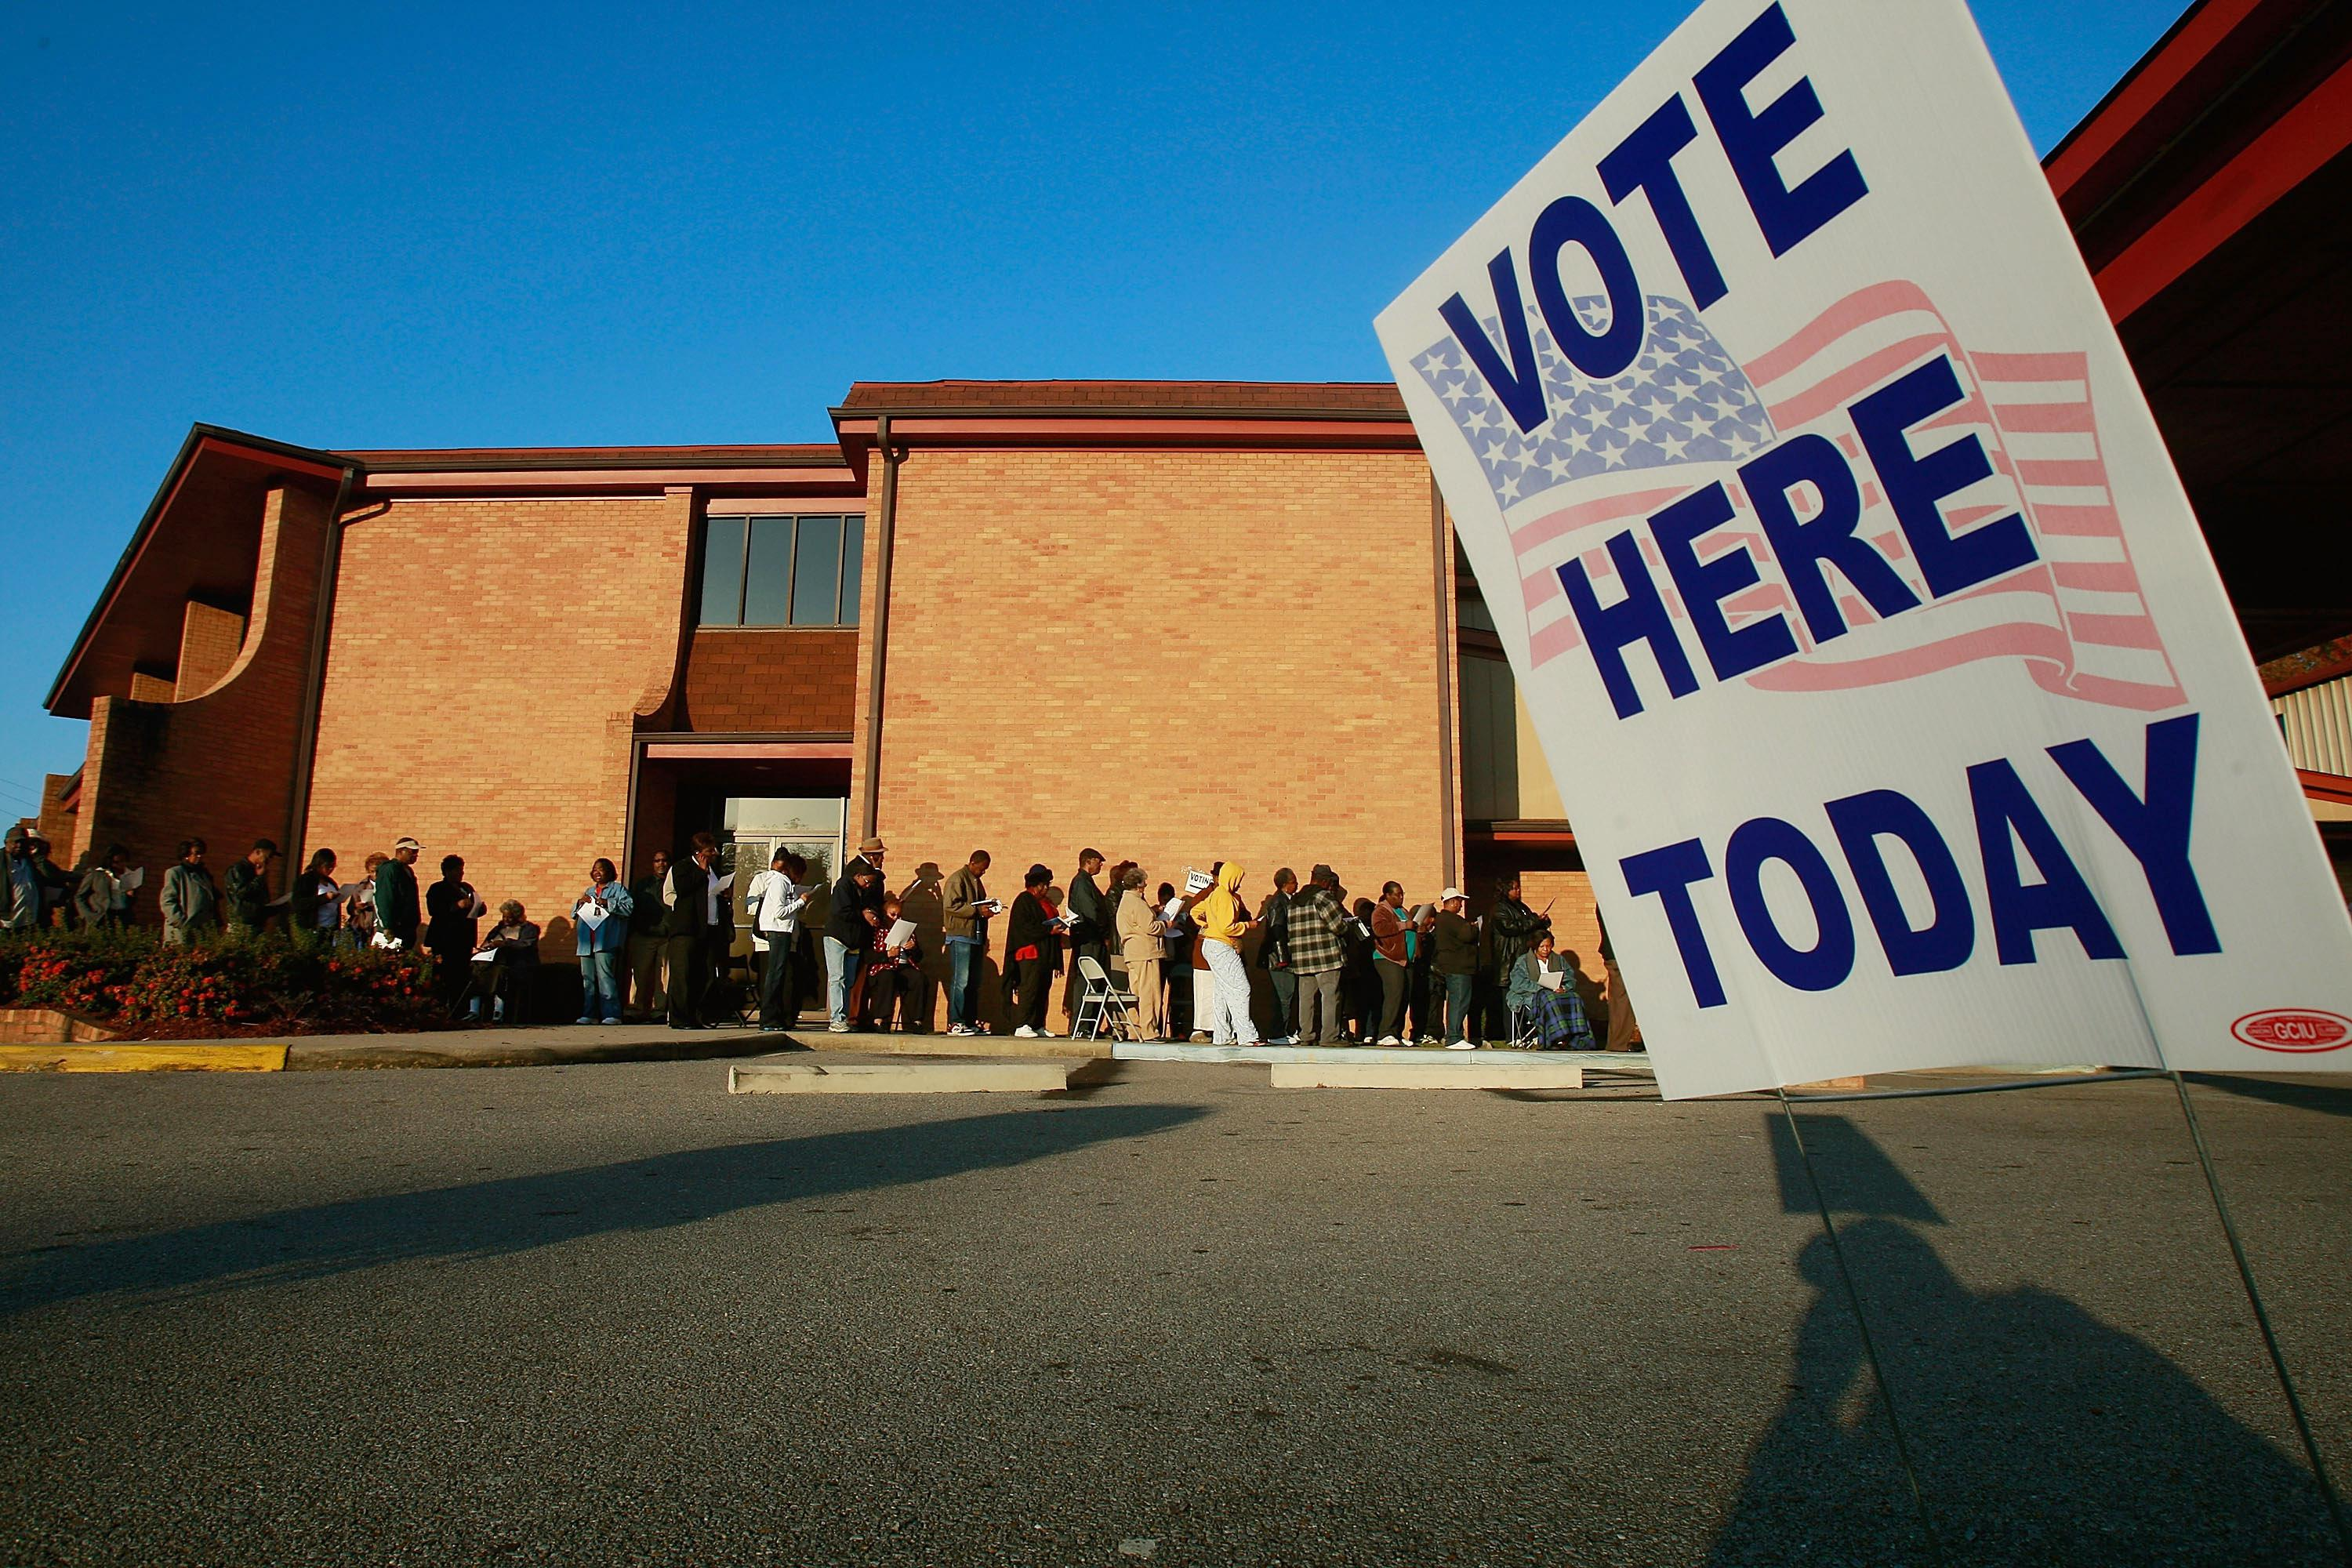 Black voters line up to vote outside Bethel Missionary Baptist Church in the presidential election November 4, 2008 in Birmingham, Alabama.